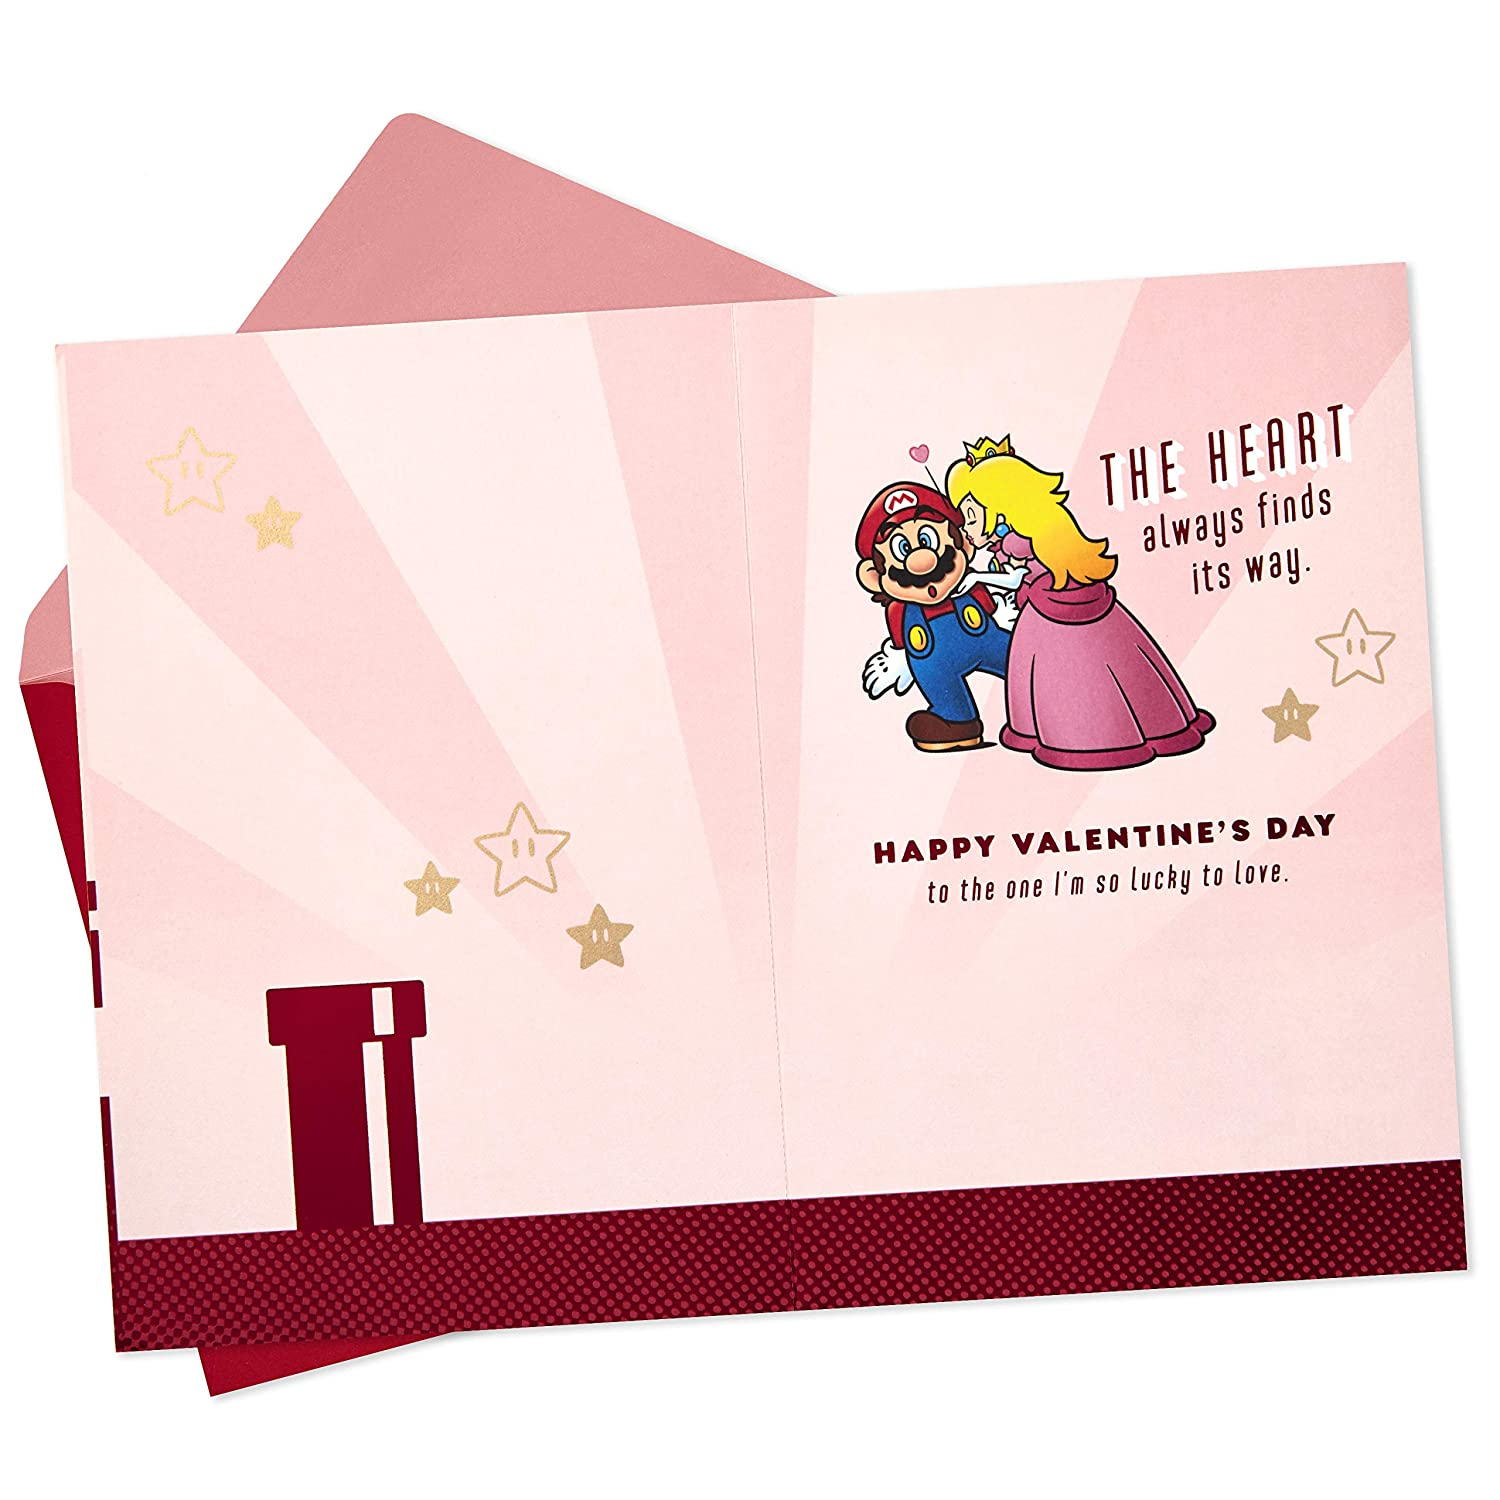 Hallmark Nintendo Super Mario Valentine's Day Card for Significant Other